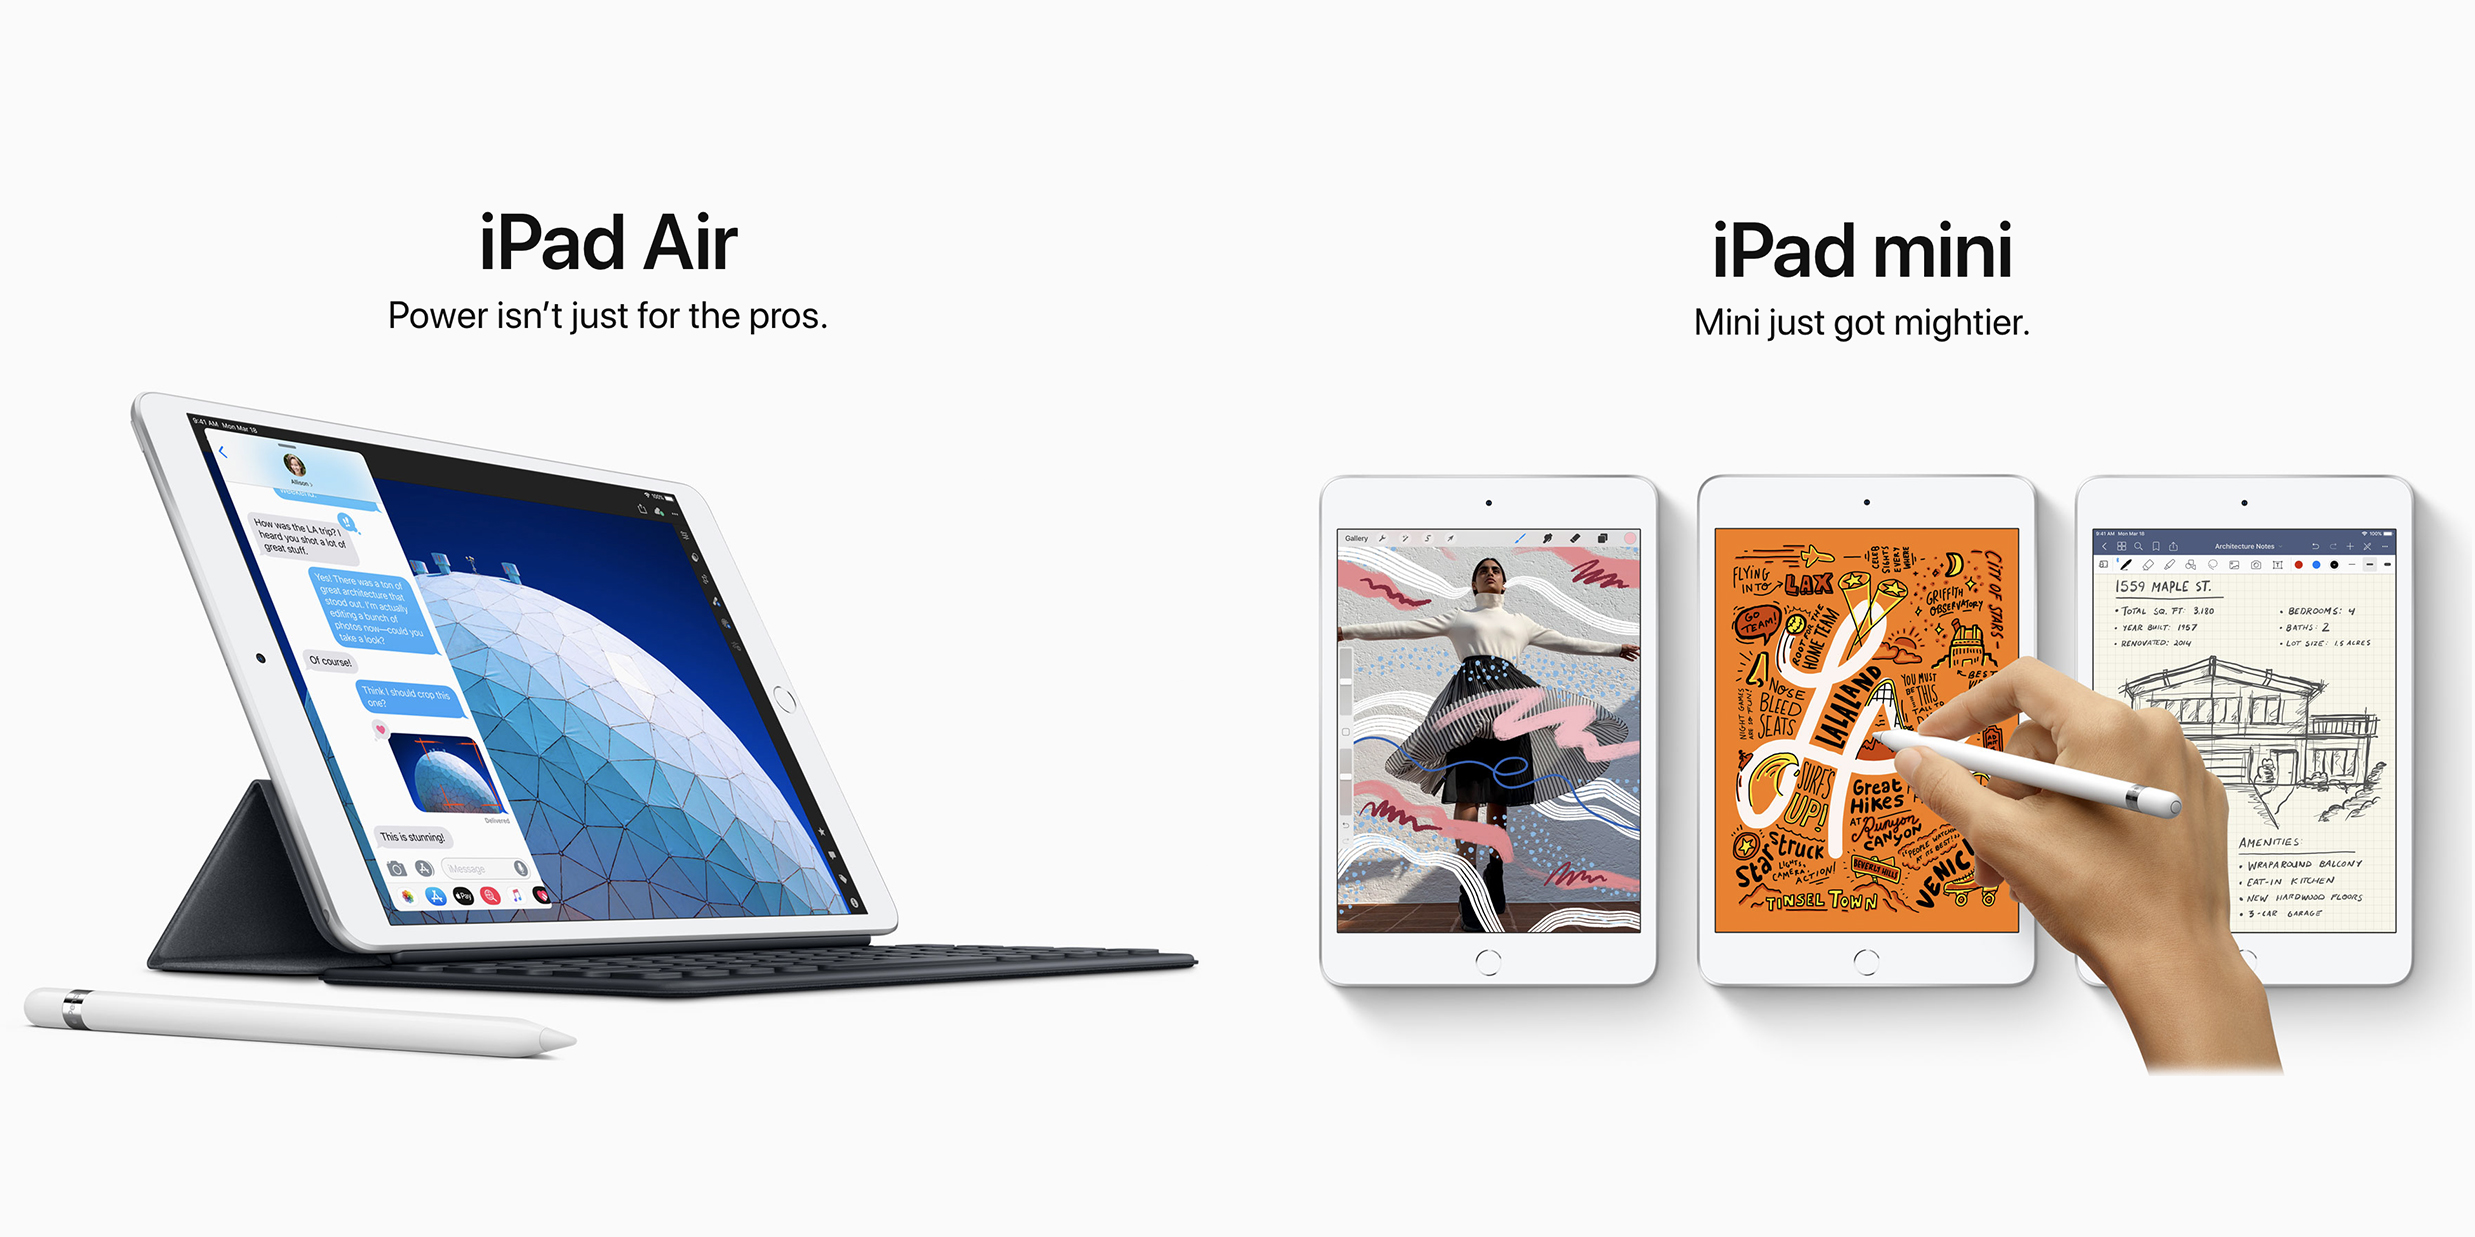 Apple's new iPad Air and iPad mini are up for pre-order (tax savings in select states)